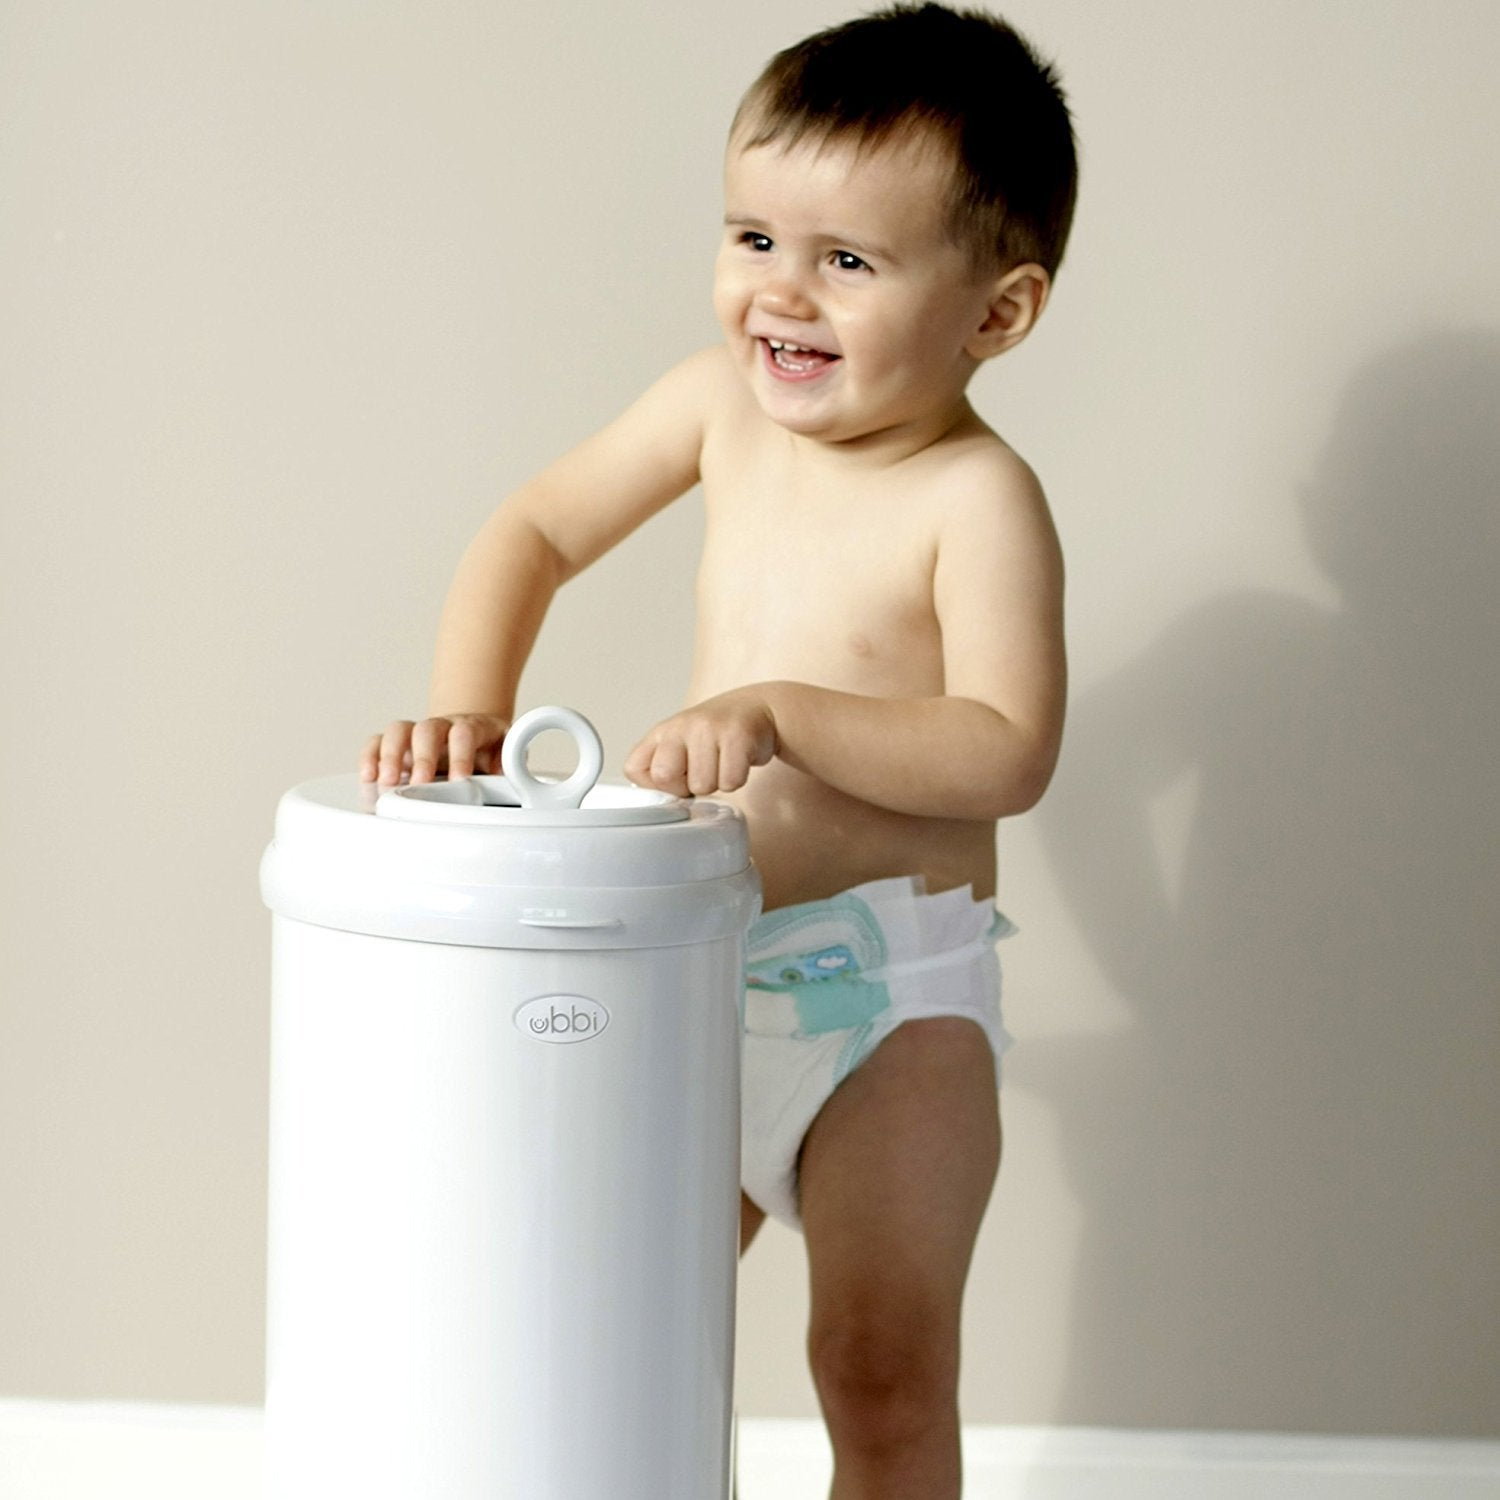 Ubbi Diaper Pail in Grey Wood Grain